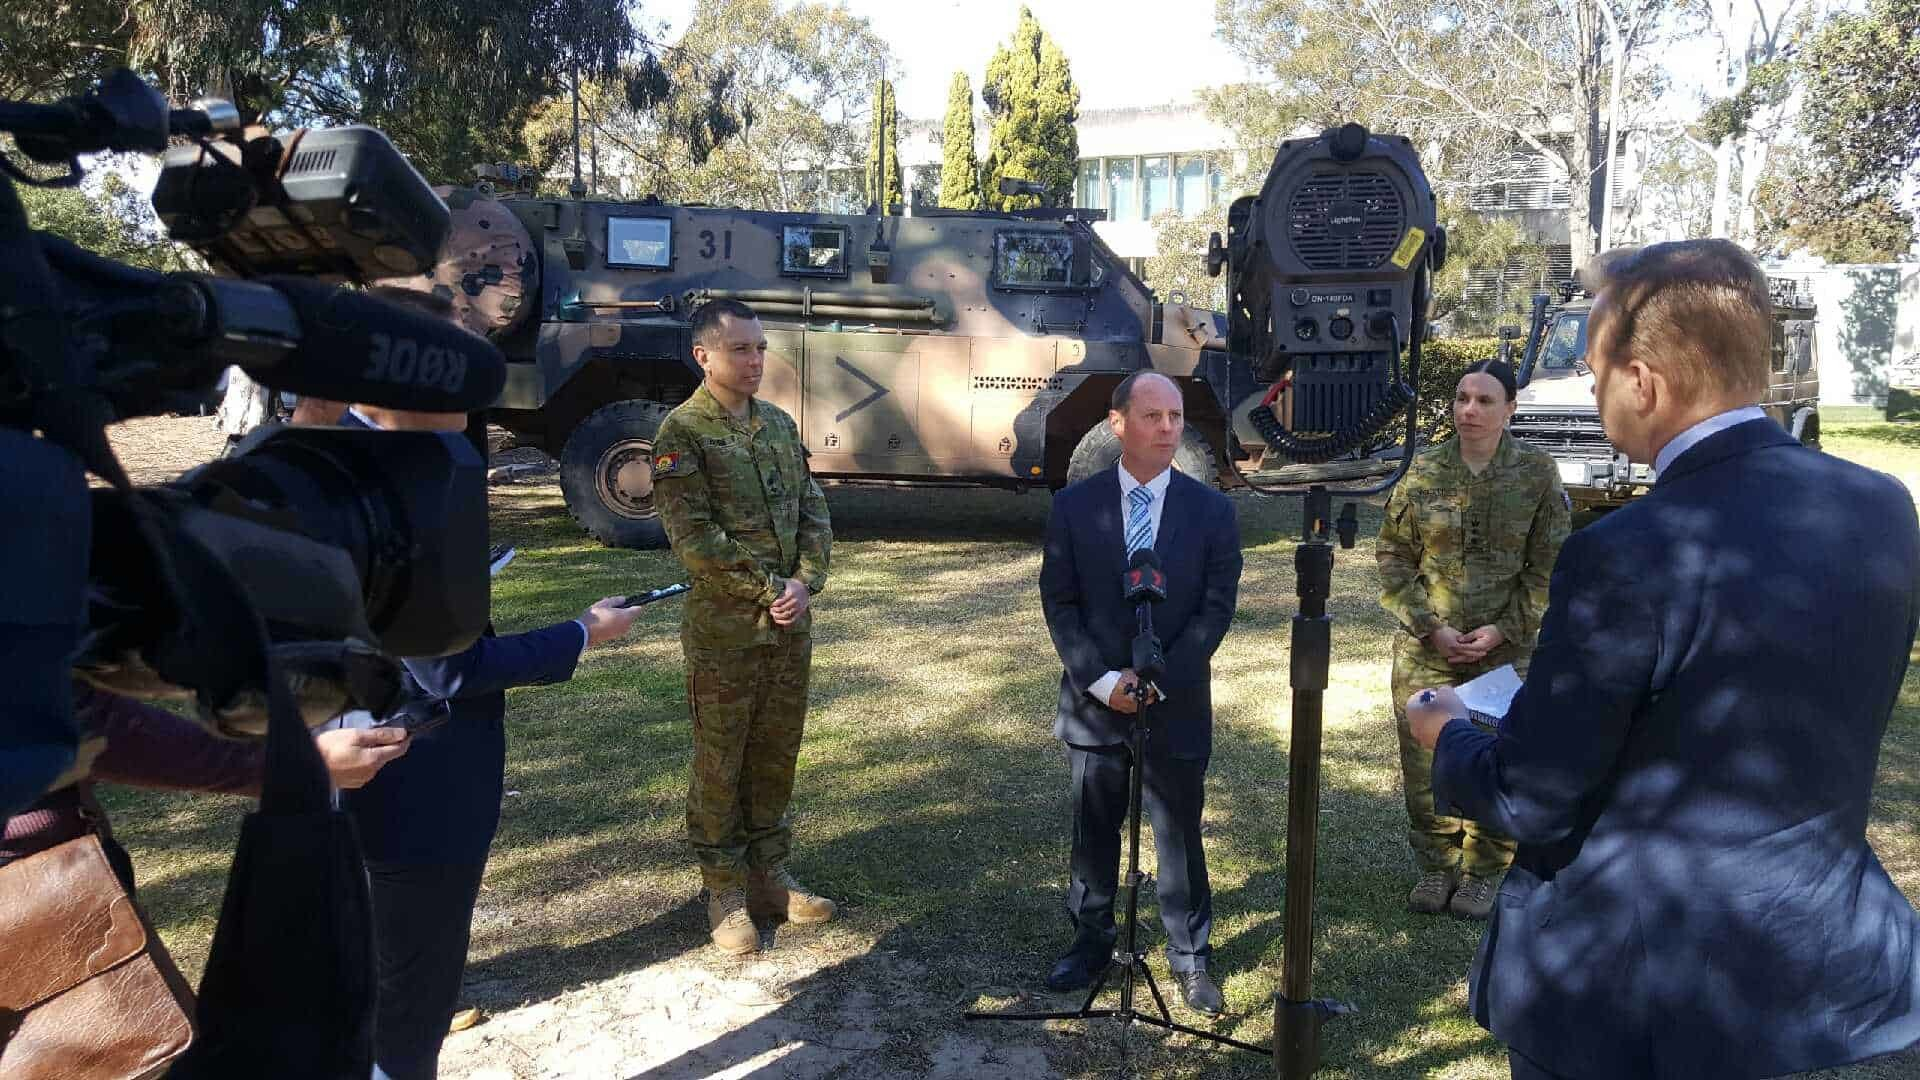 Res: 1920x1080, Speaking at the Randwick Army Barracks with Army representatives on Monday,  20 August 2018 was UAVAIR General Manager, Mr David Mann who presented on  the ...